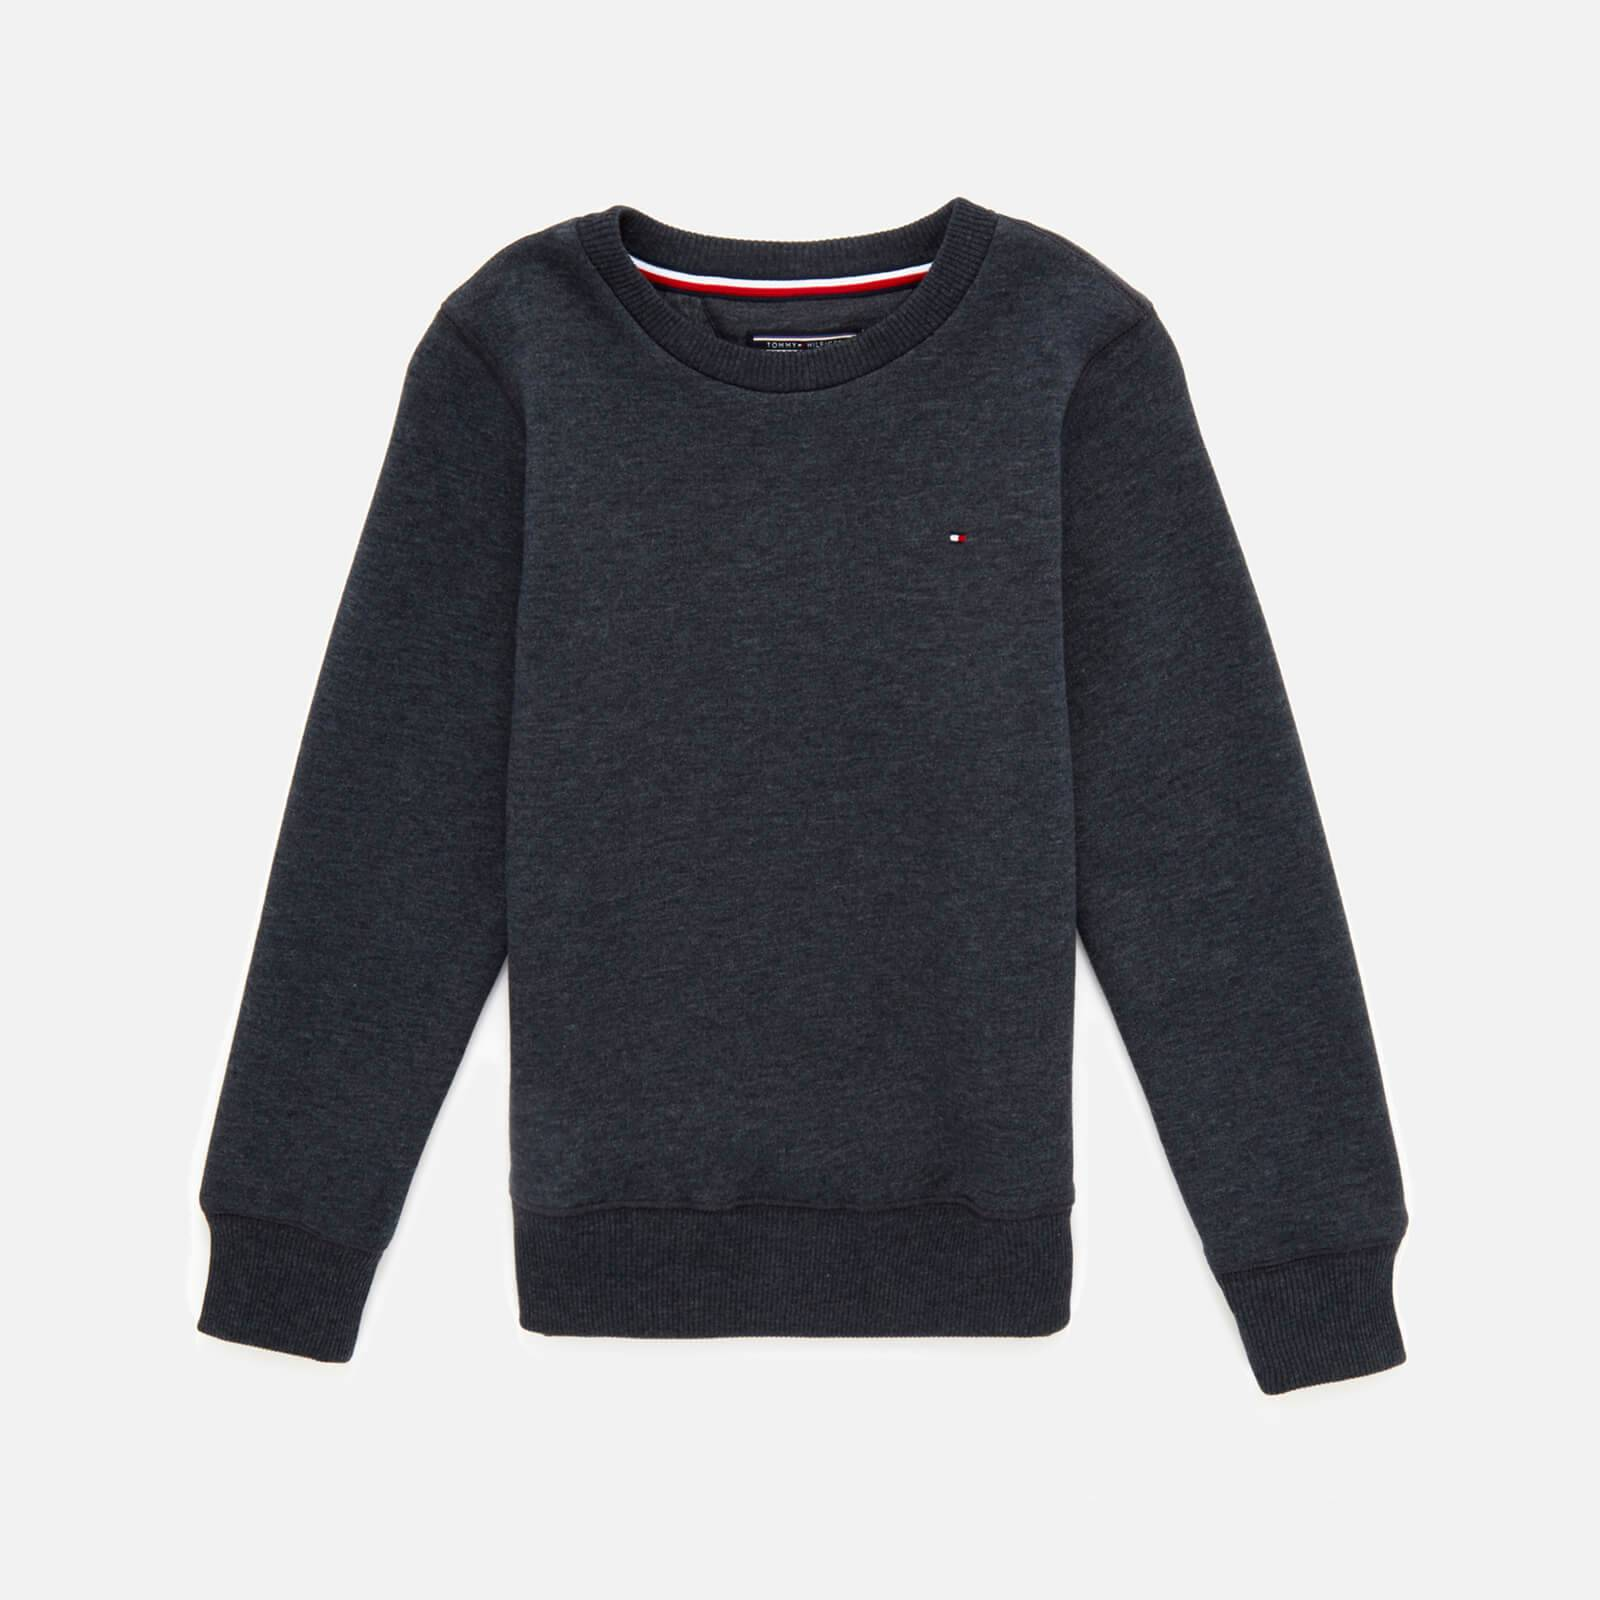 Tommy Kids Boys' Basic Sweatshirt - Sky Captain - 8 Years